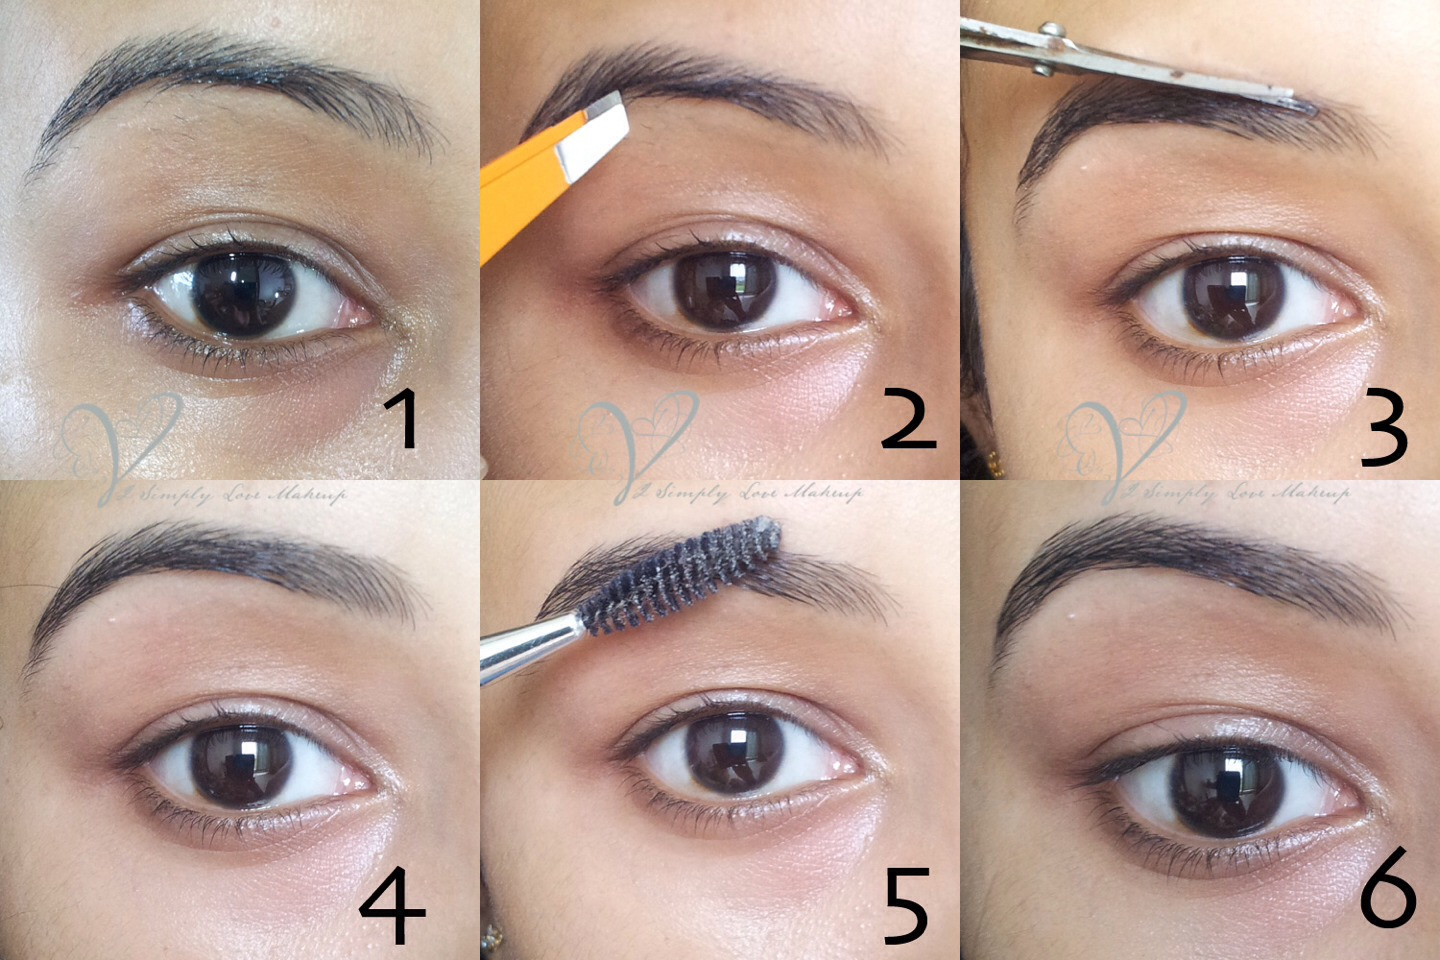 Tips For Applying Eye-Makeup! AWESOME Tips!💕 - Musely